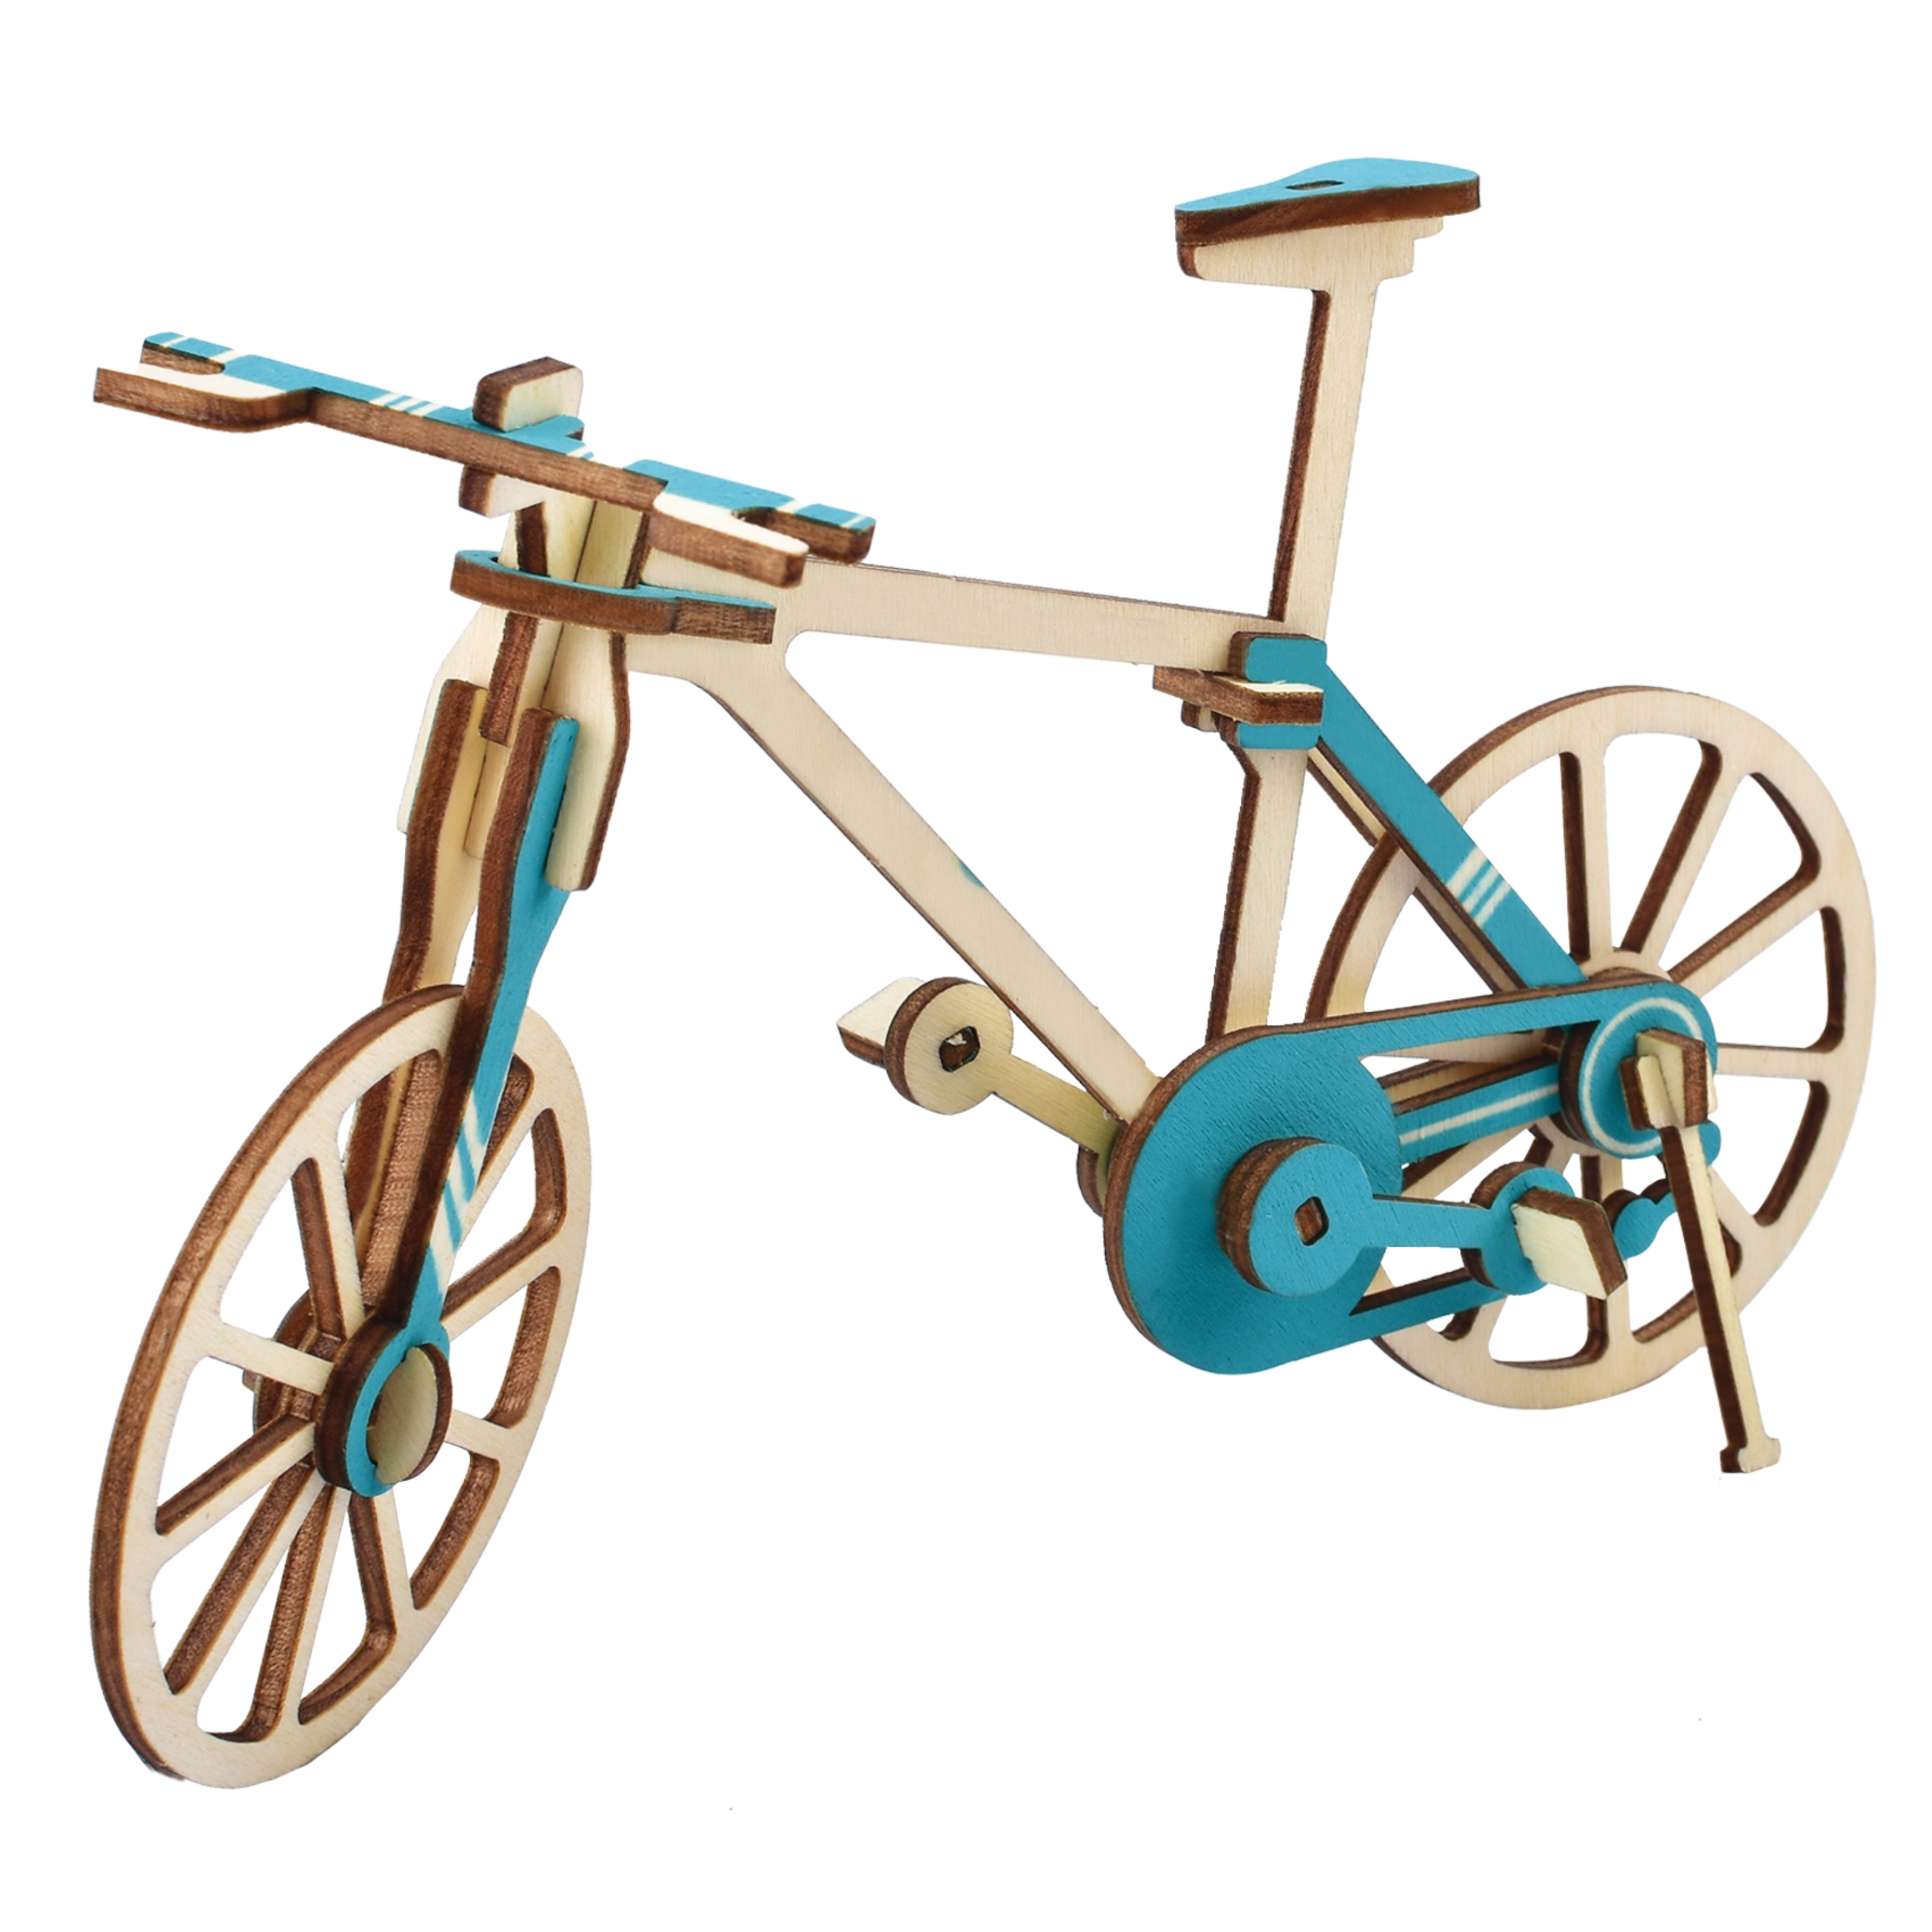 Laser Cutting New Assembly DIY Education Toy 3D Wooden Model Puzzles For Kids Gifts Of Bicycle Bike